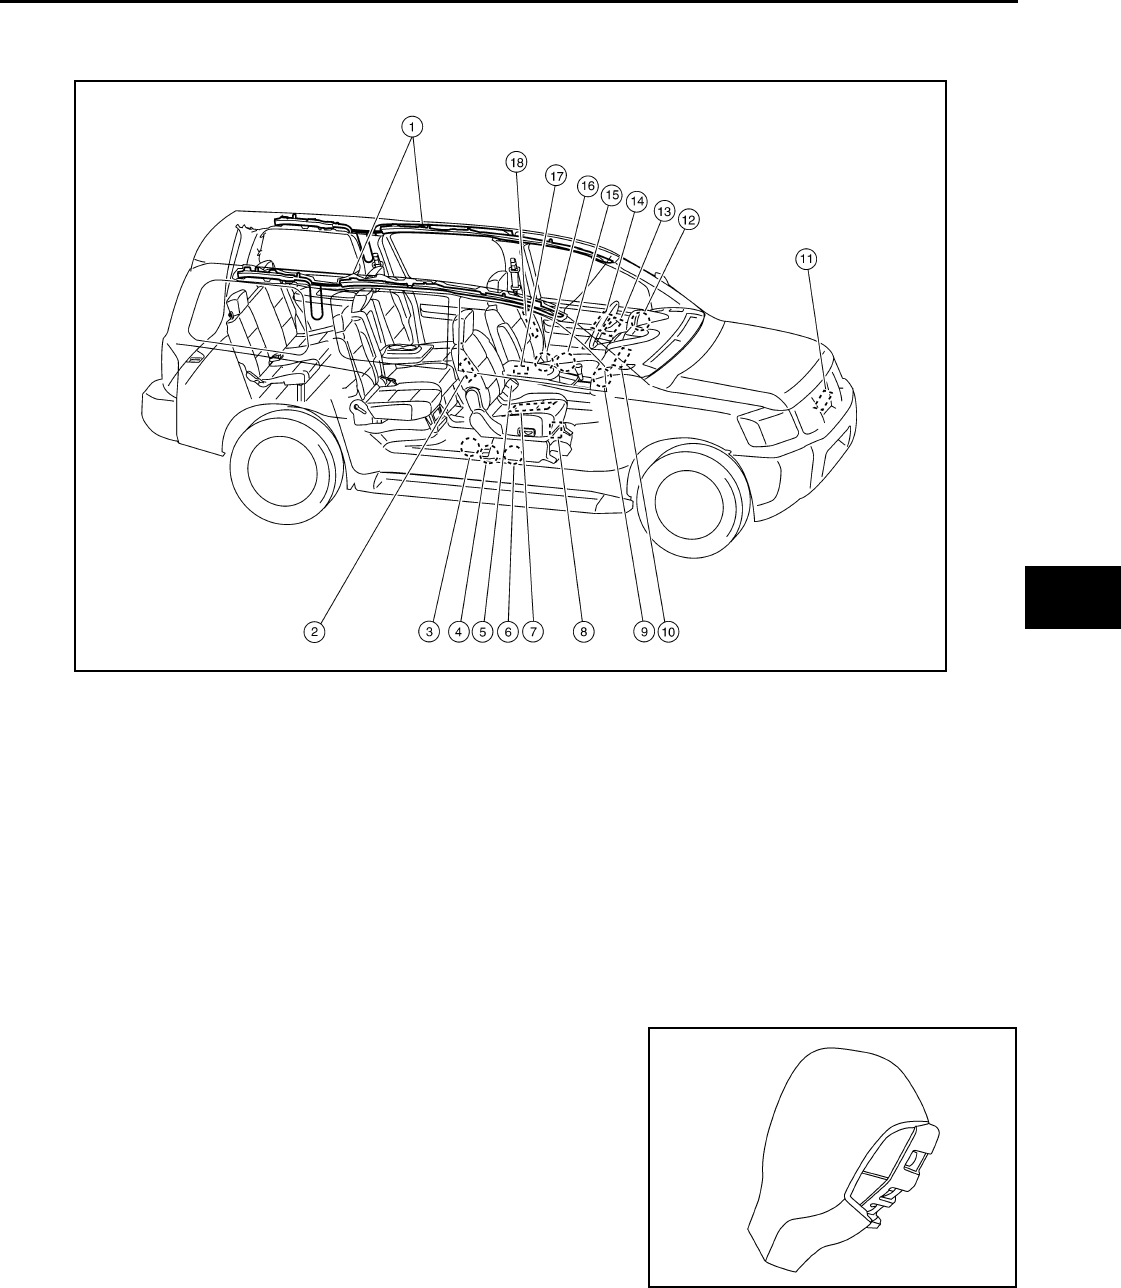 Toyota Sienna Service Manual: Front Occupant Classification Sensor RH CollisionDetection